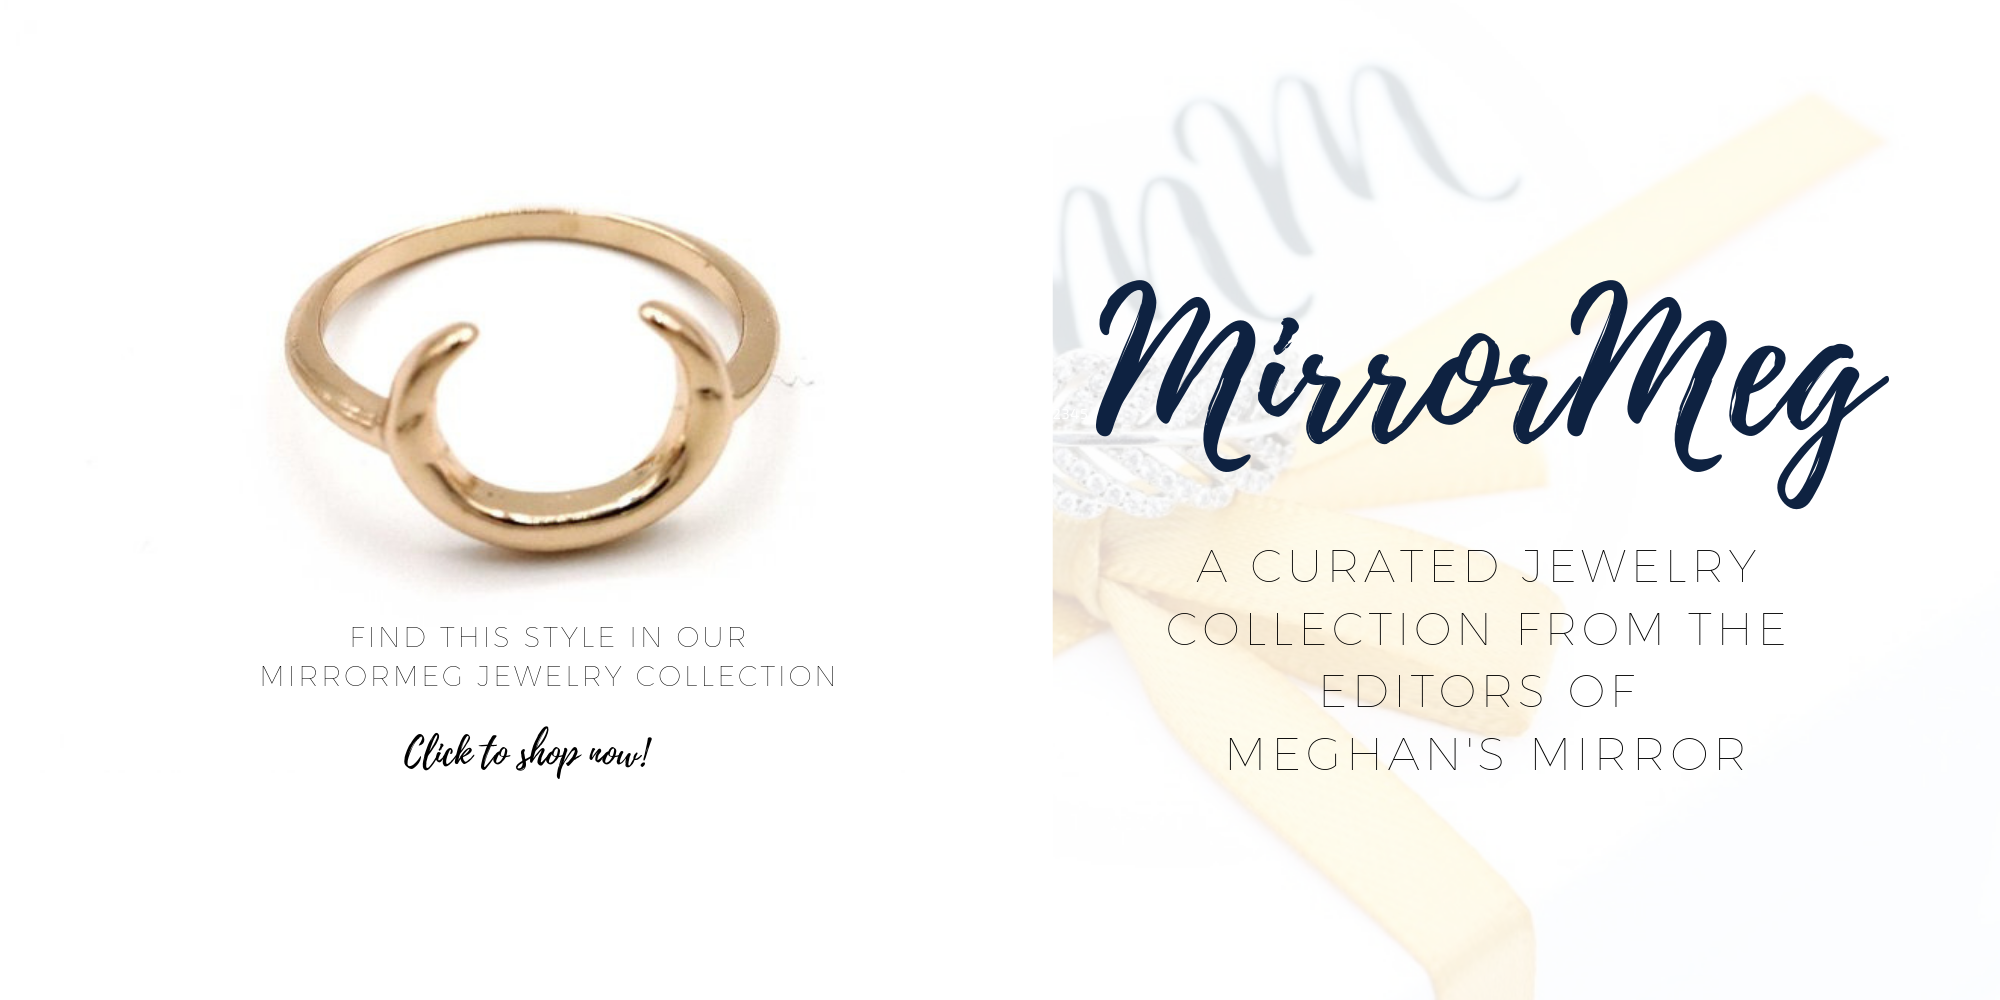 MirrorMeg Moon Ring Meghan Markle Sussex Etsy